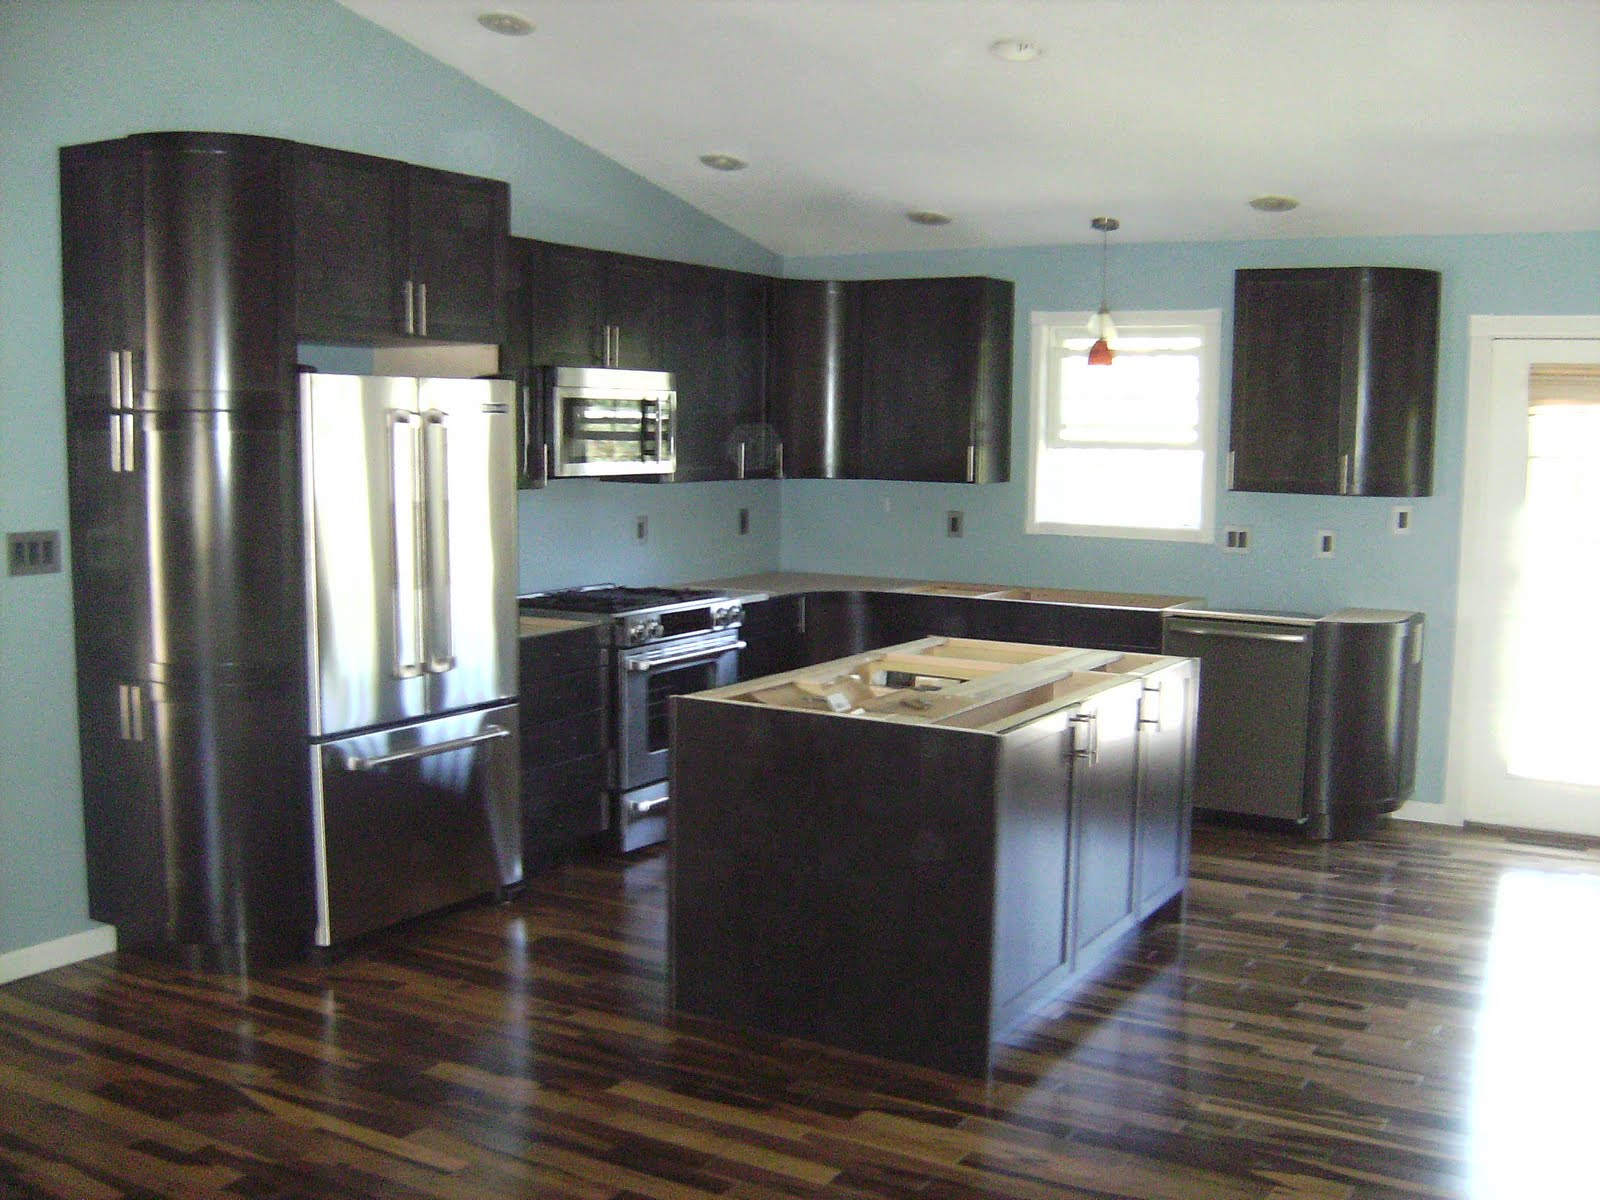 Knapp Tile and Flooring, Inc.: June 2010